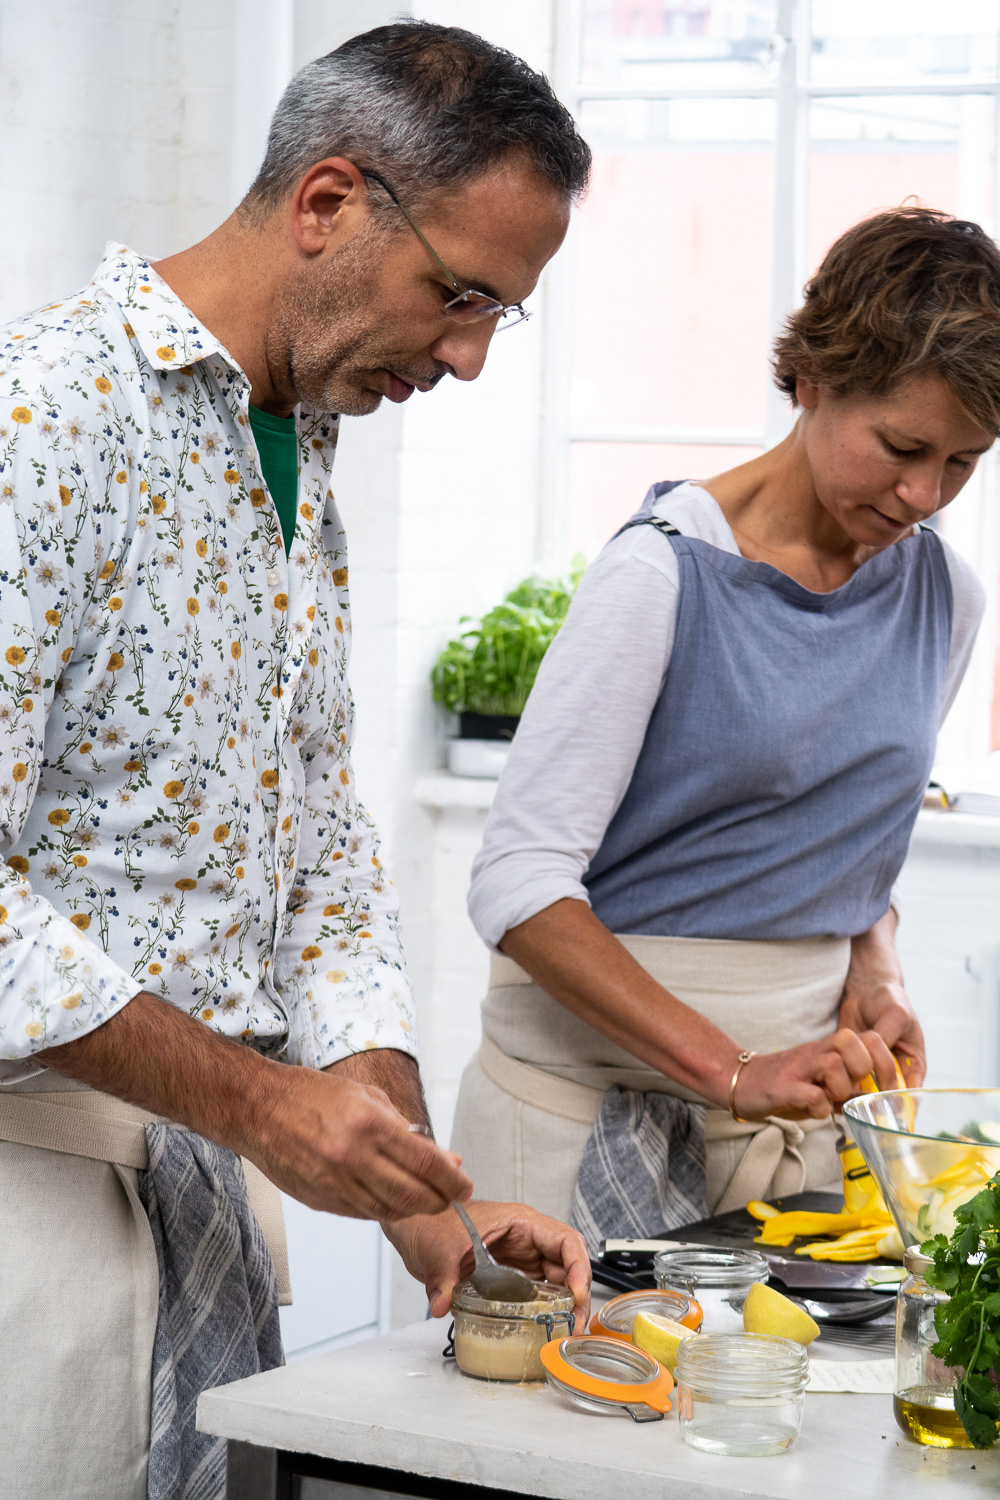 Chefs Yotam Ottolenghi and Tara Wigley cooking in London